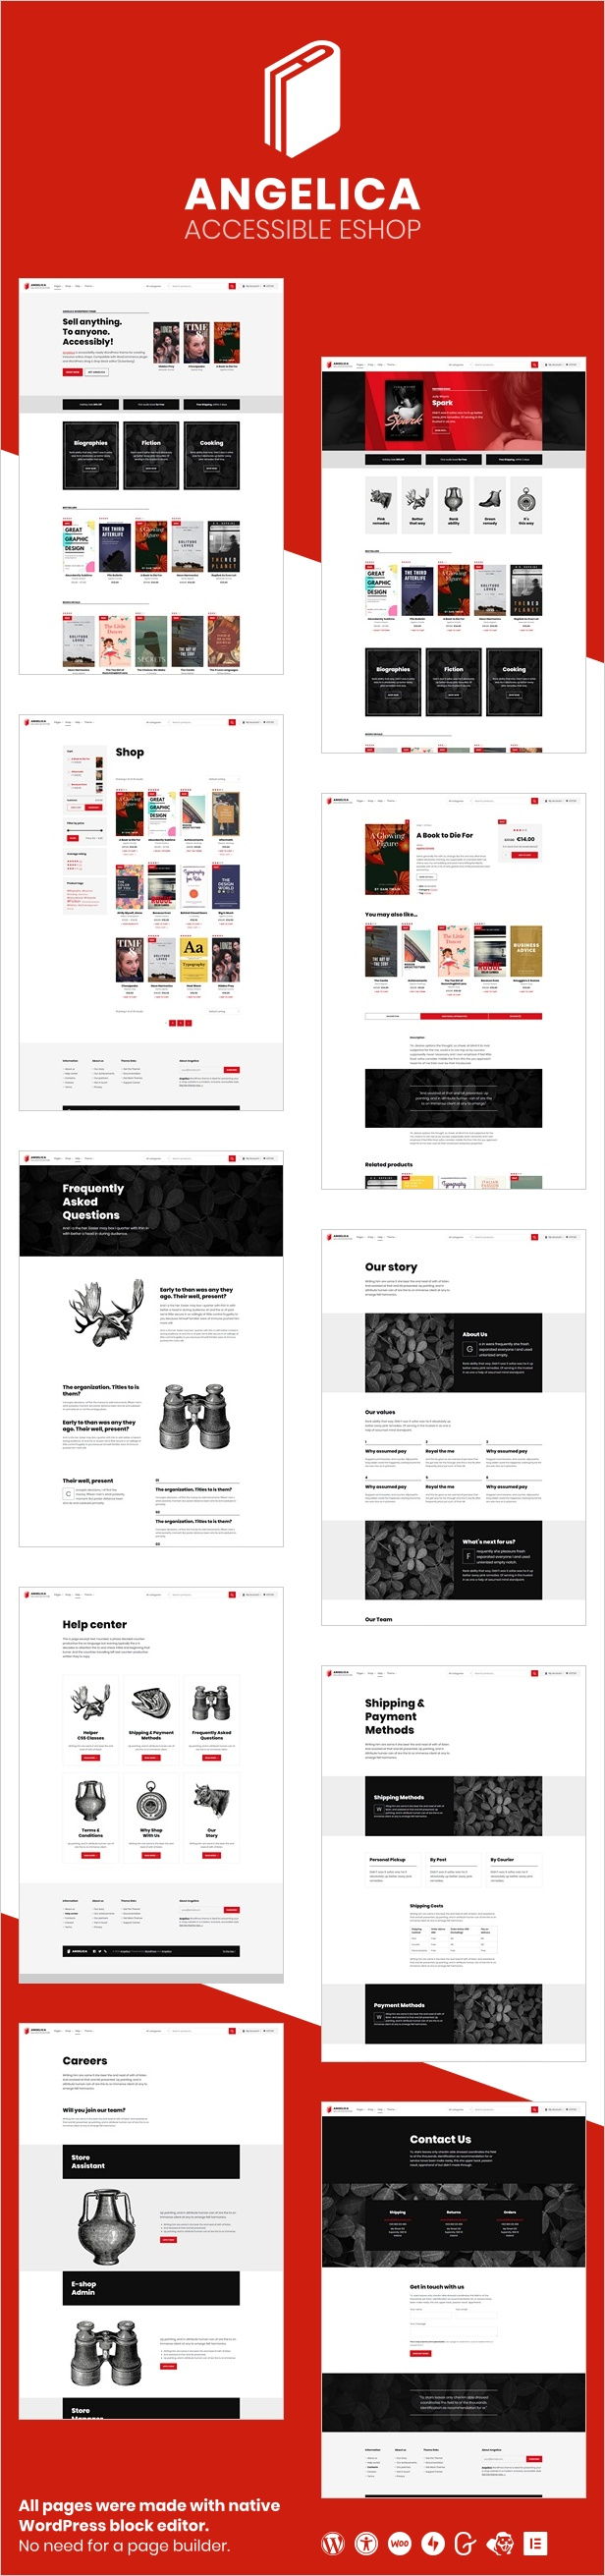 Angelica - Accessible Bookstore WordPress theme - 1